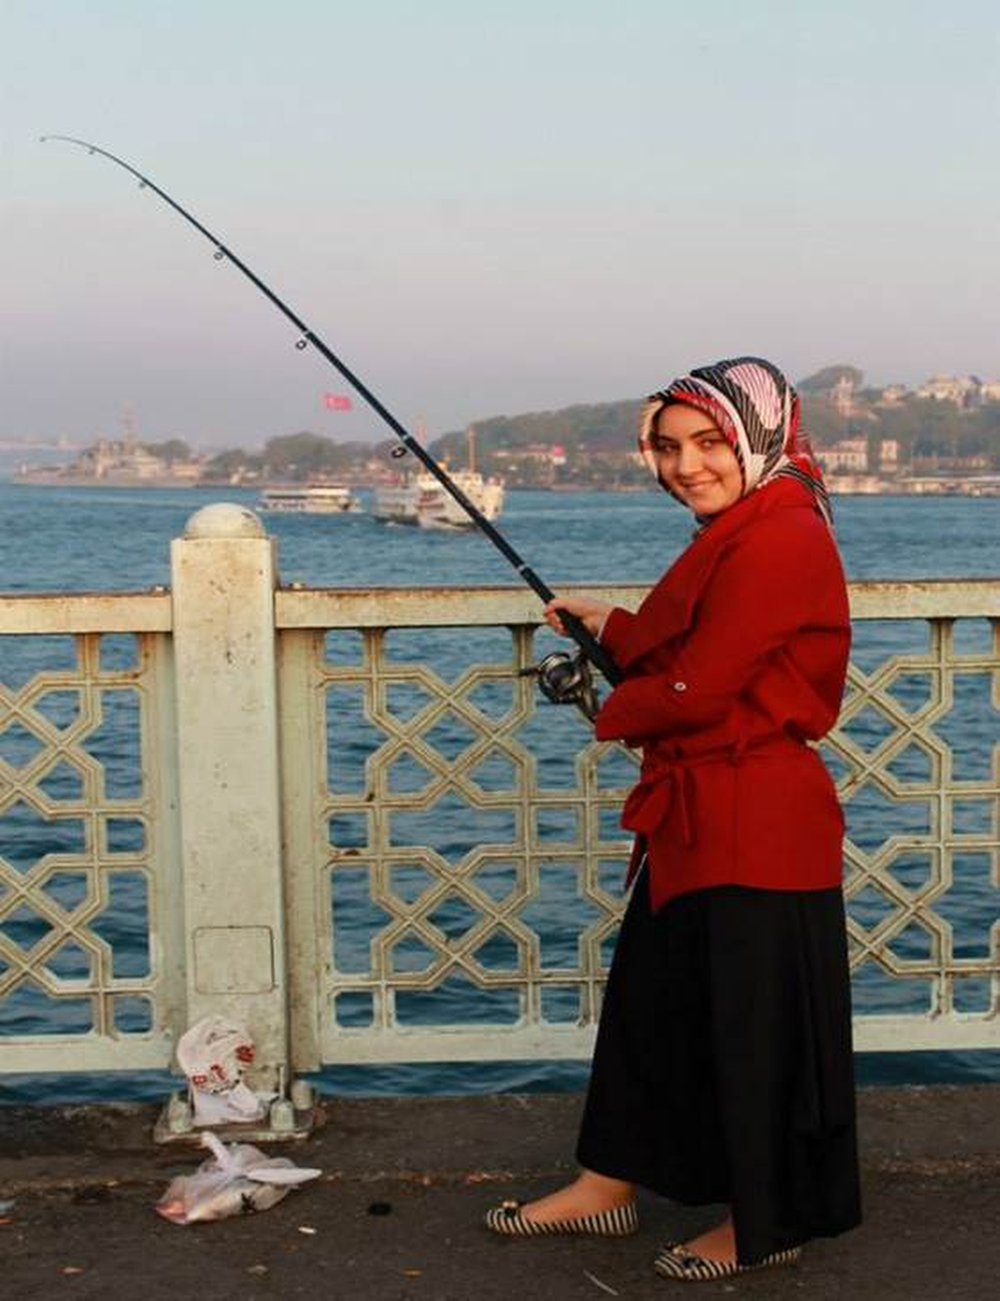 A woman fishes from the bridge across the Bosphorous in Istanbul. Women fishing on this bridge are a rare sight. I was surprised to walk across the bridge at night and see people fish and some make dinner on the sidewalk. Photograph by Kelsey Schober '16.